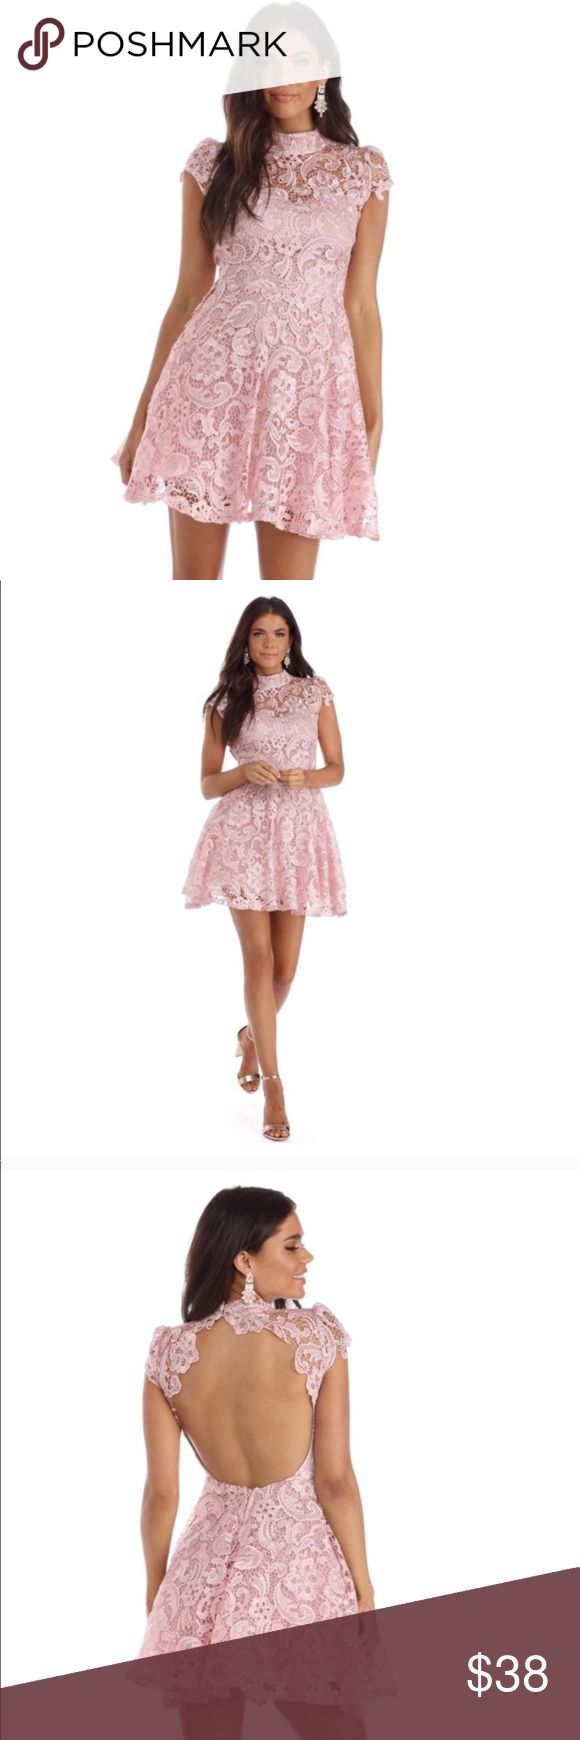 """Classy Pink Lace Dress  Because everyone loves a lace party! This cute homecoming style livens up the night with a mock neck that closes with two gold button, scalloped cap sleeves and a large open back. The dress has a playful skater skirt with a tulle underlay and is composed of a sheer crochet lace paired with a thin sweetheart lining.  Model is 5'9"""" with a 32"""" bust, 25"""" waist and 35"""" hips. She is wearing a size small. Windsor Dresses Prom"""